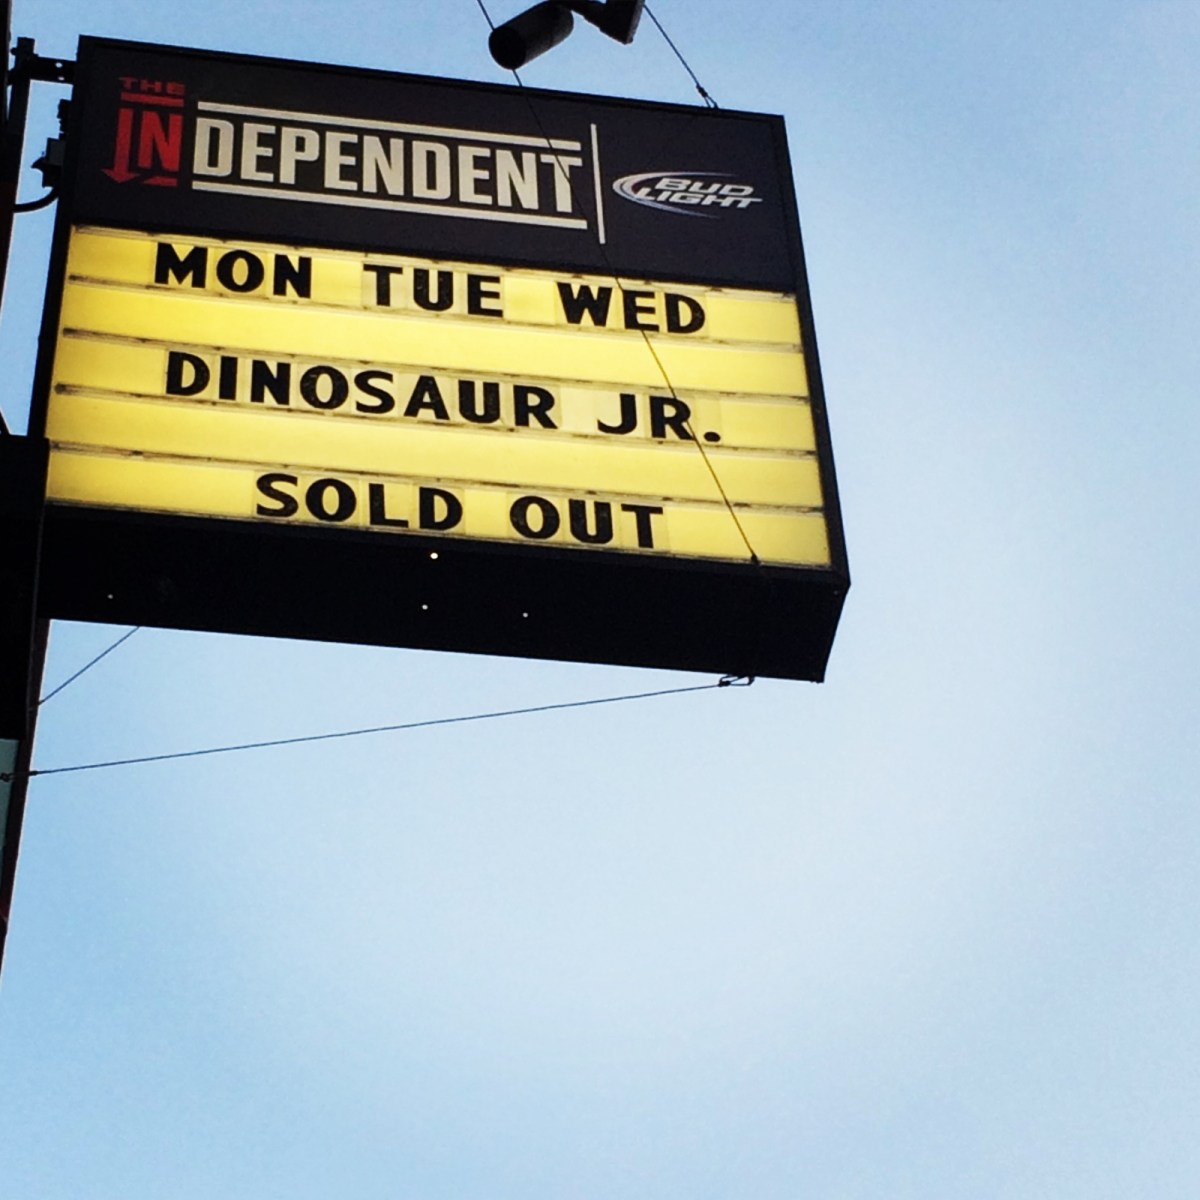 Dino Jr at Independent